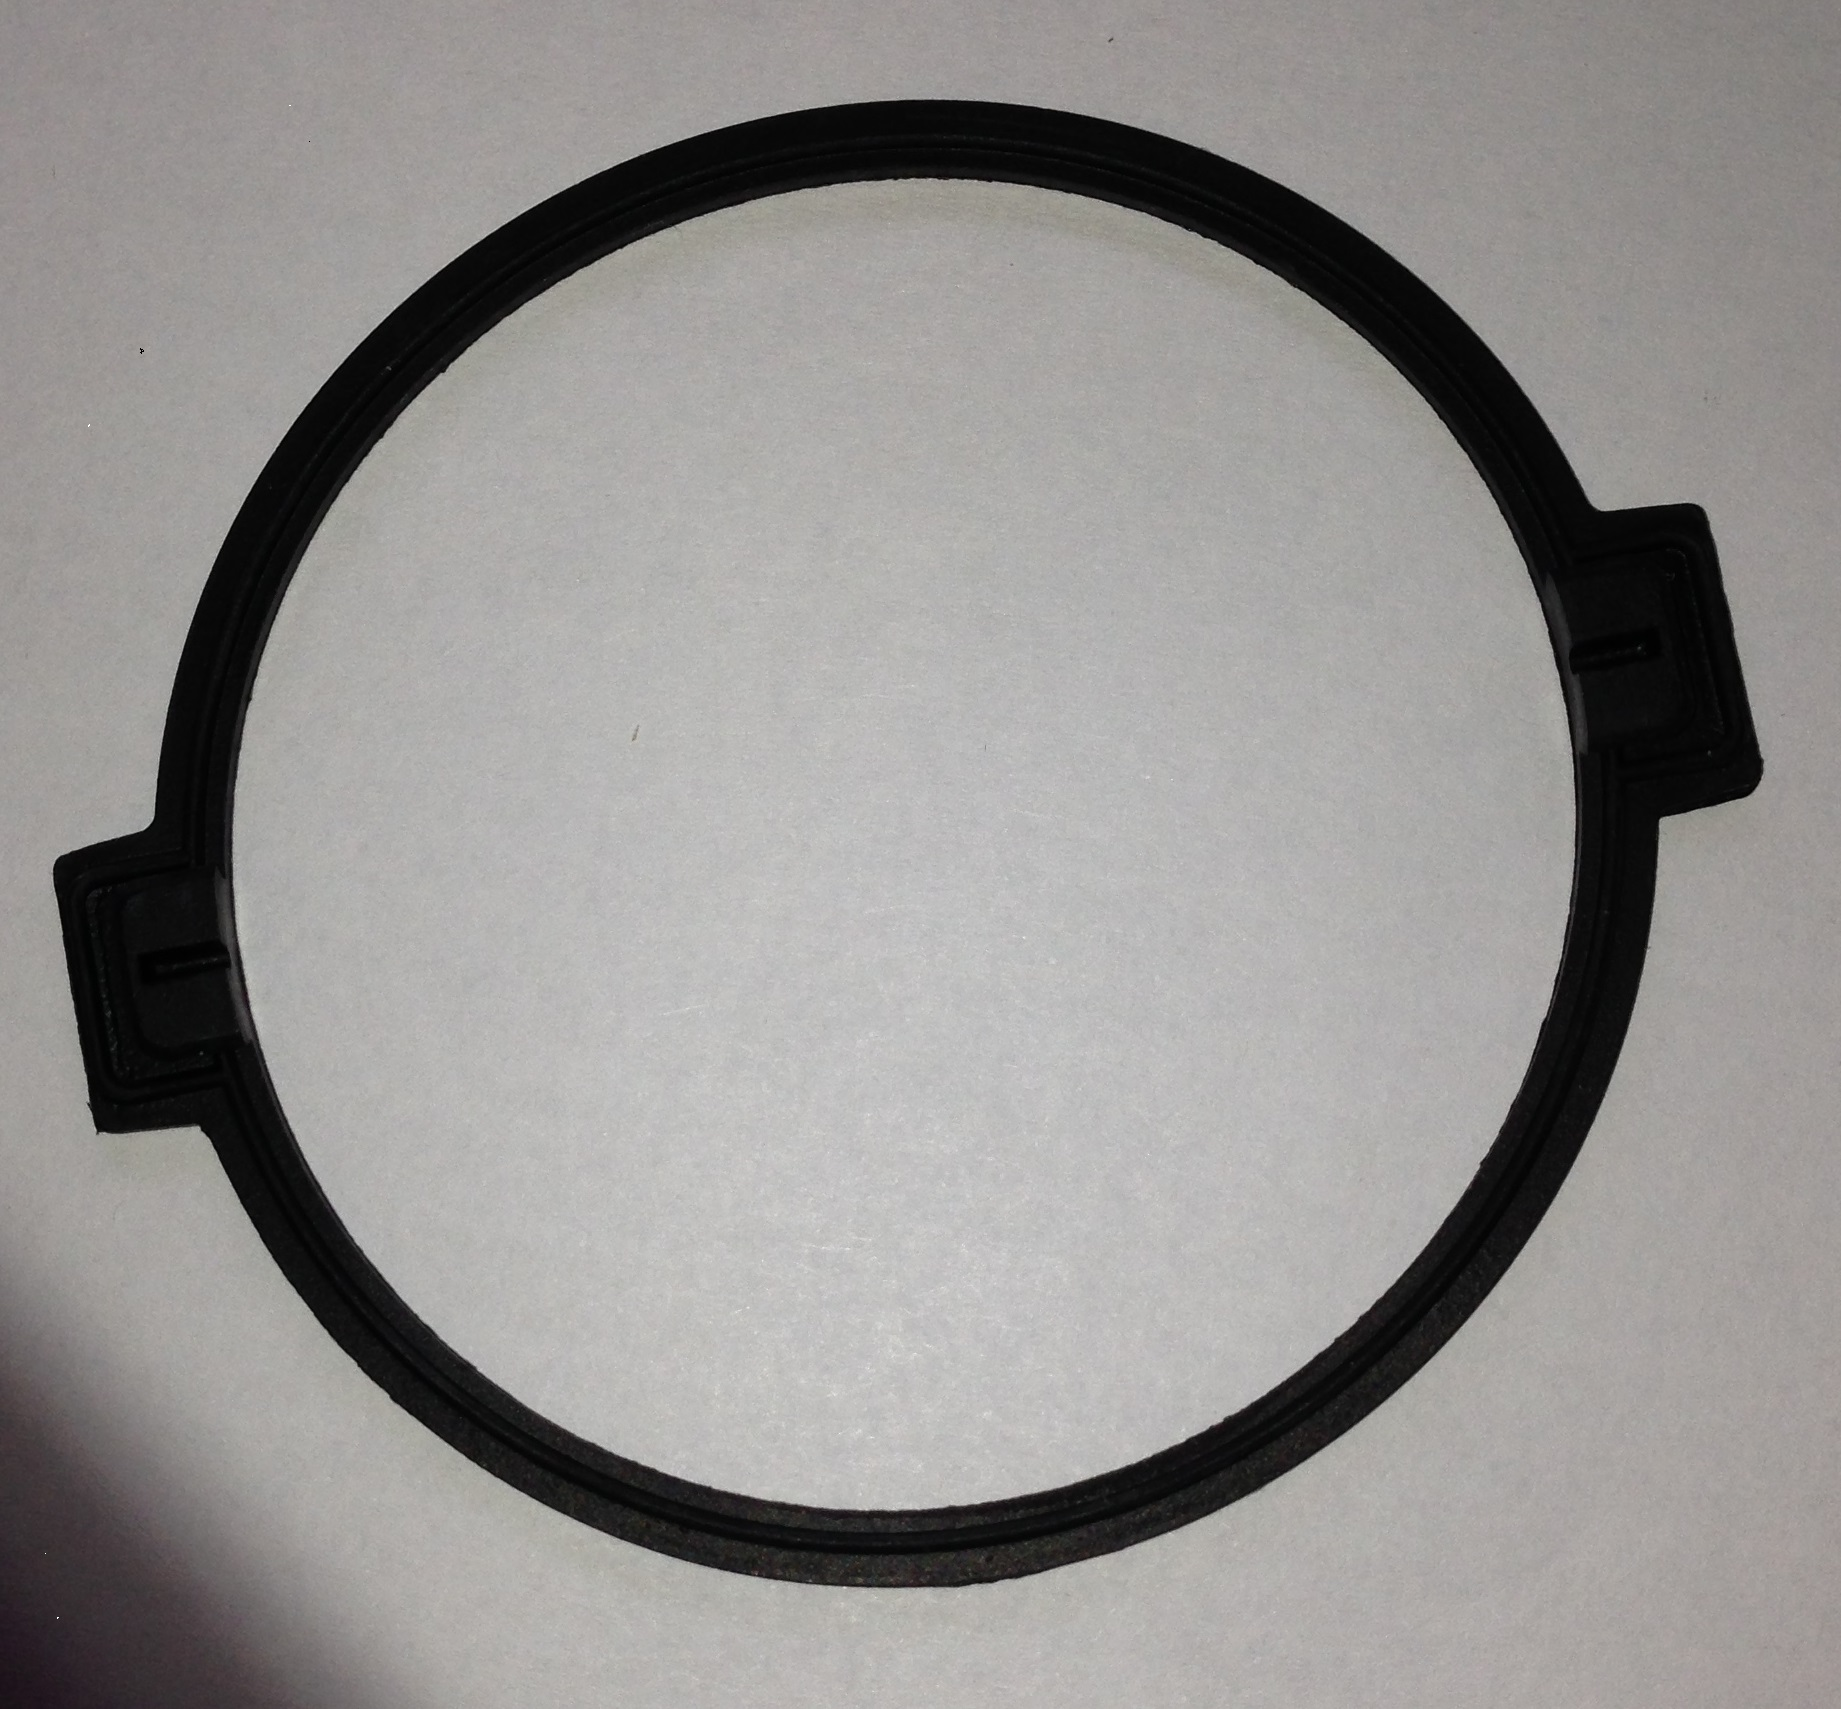 Picture of Distributer Cap Gasket